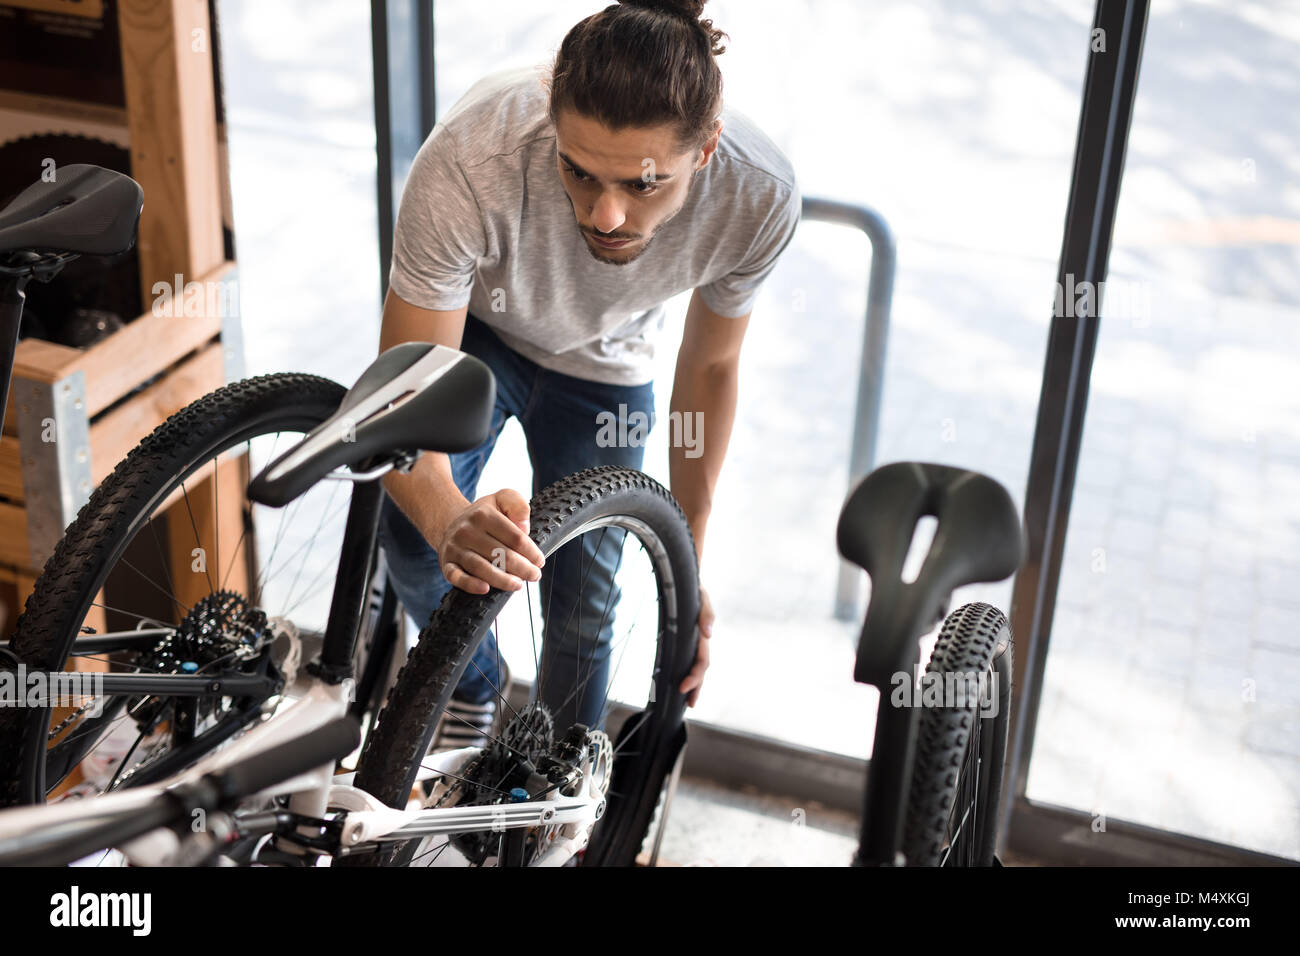 Man inspecting a bicycle wheel for alignment. Mechanic working on fixing a bicycle in workshop. - Stock Image